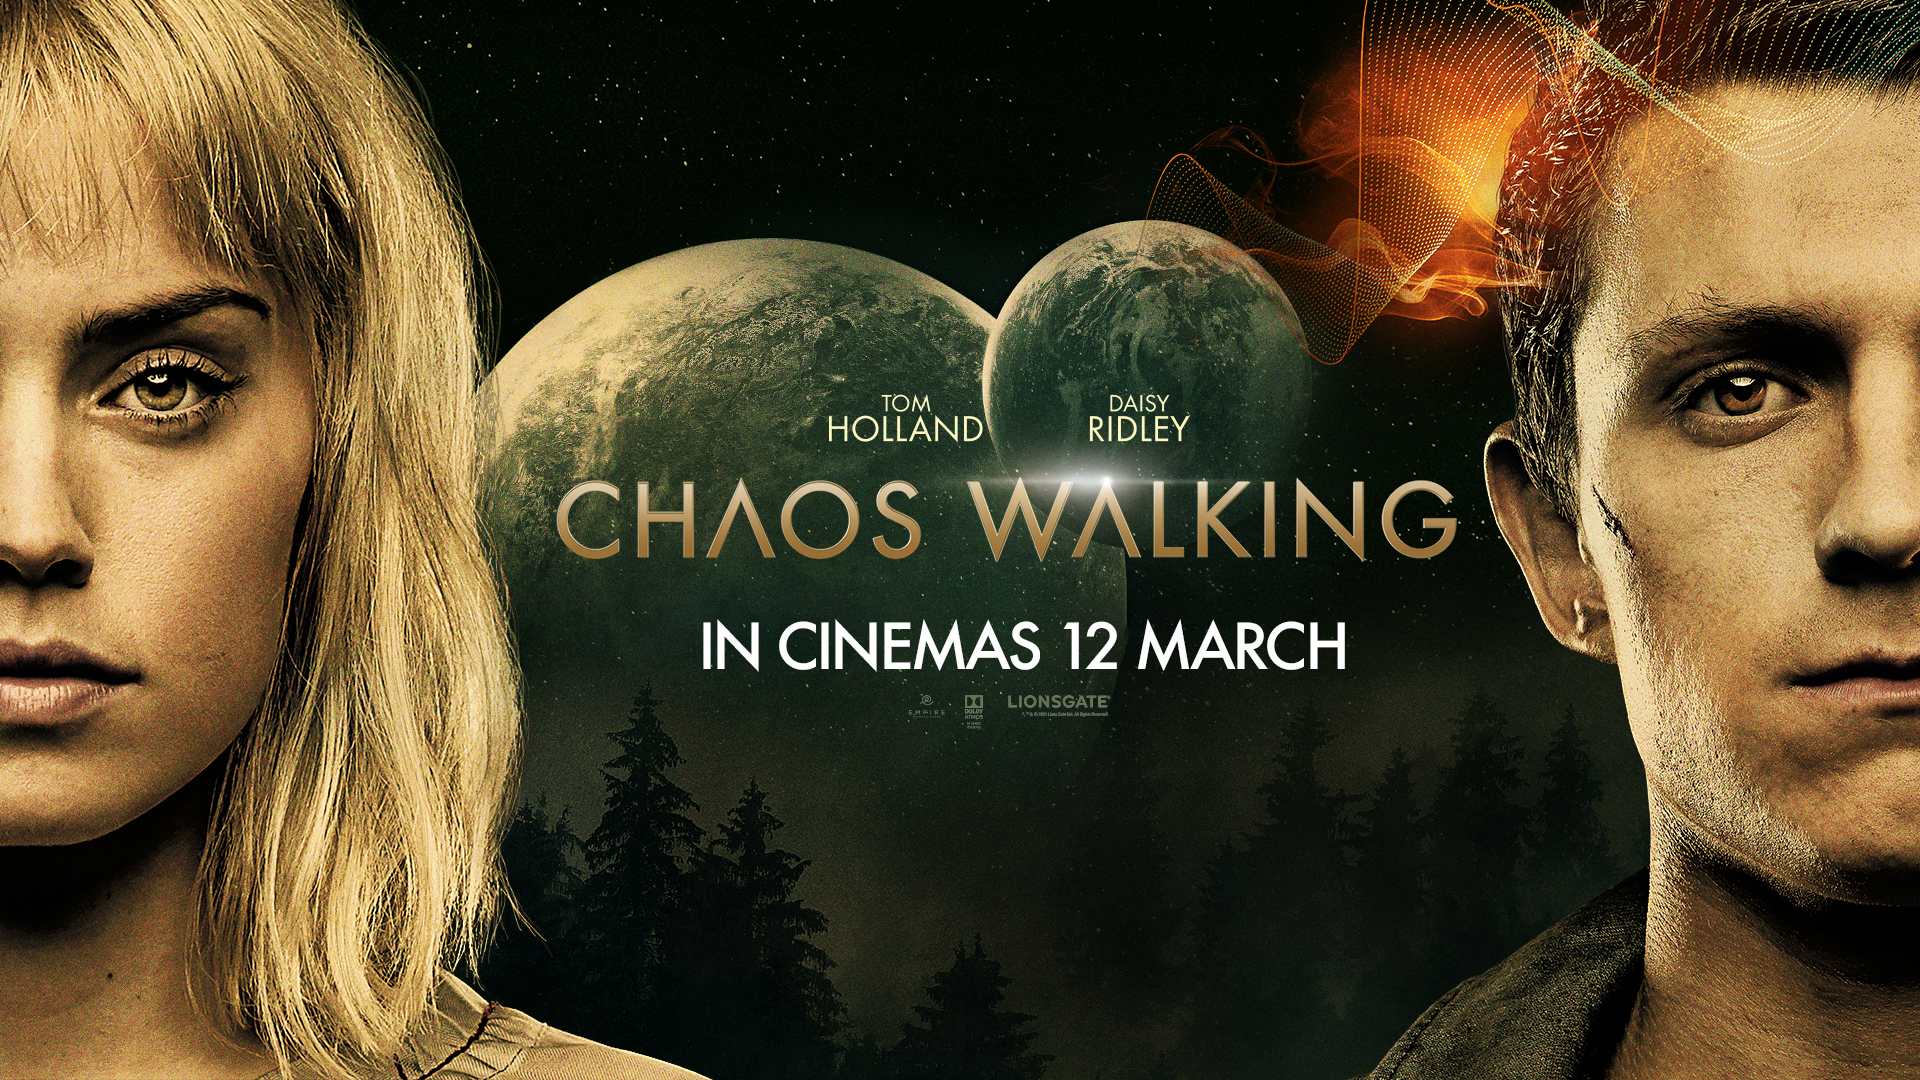 'Chaos Walking' - landscape artwork